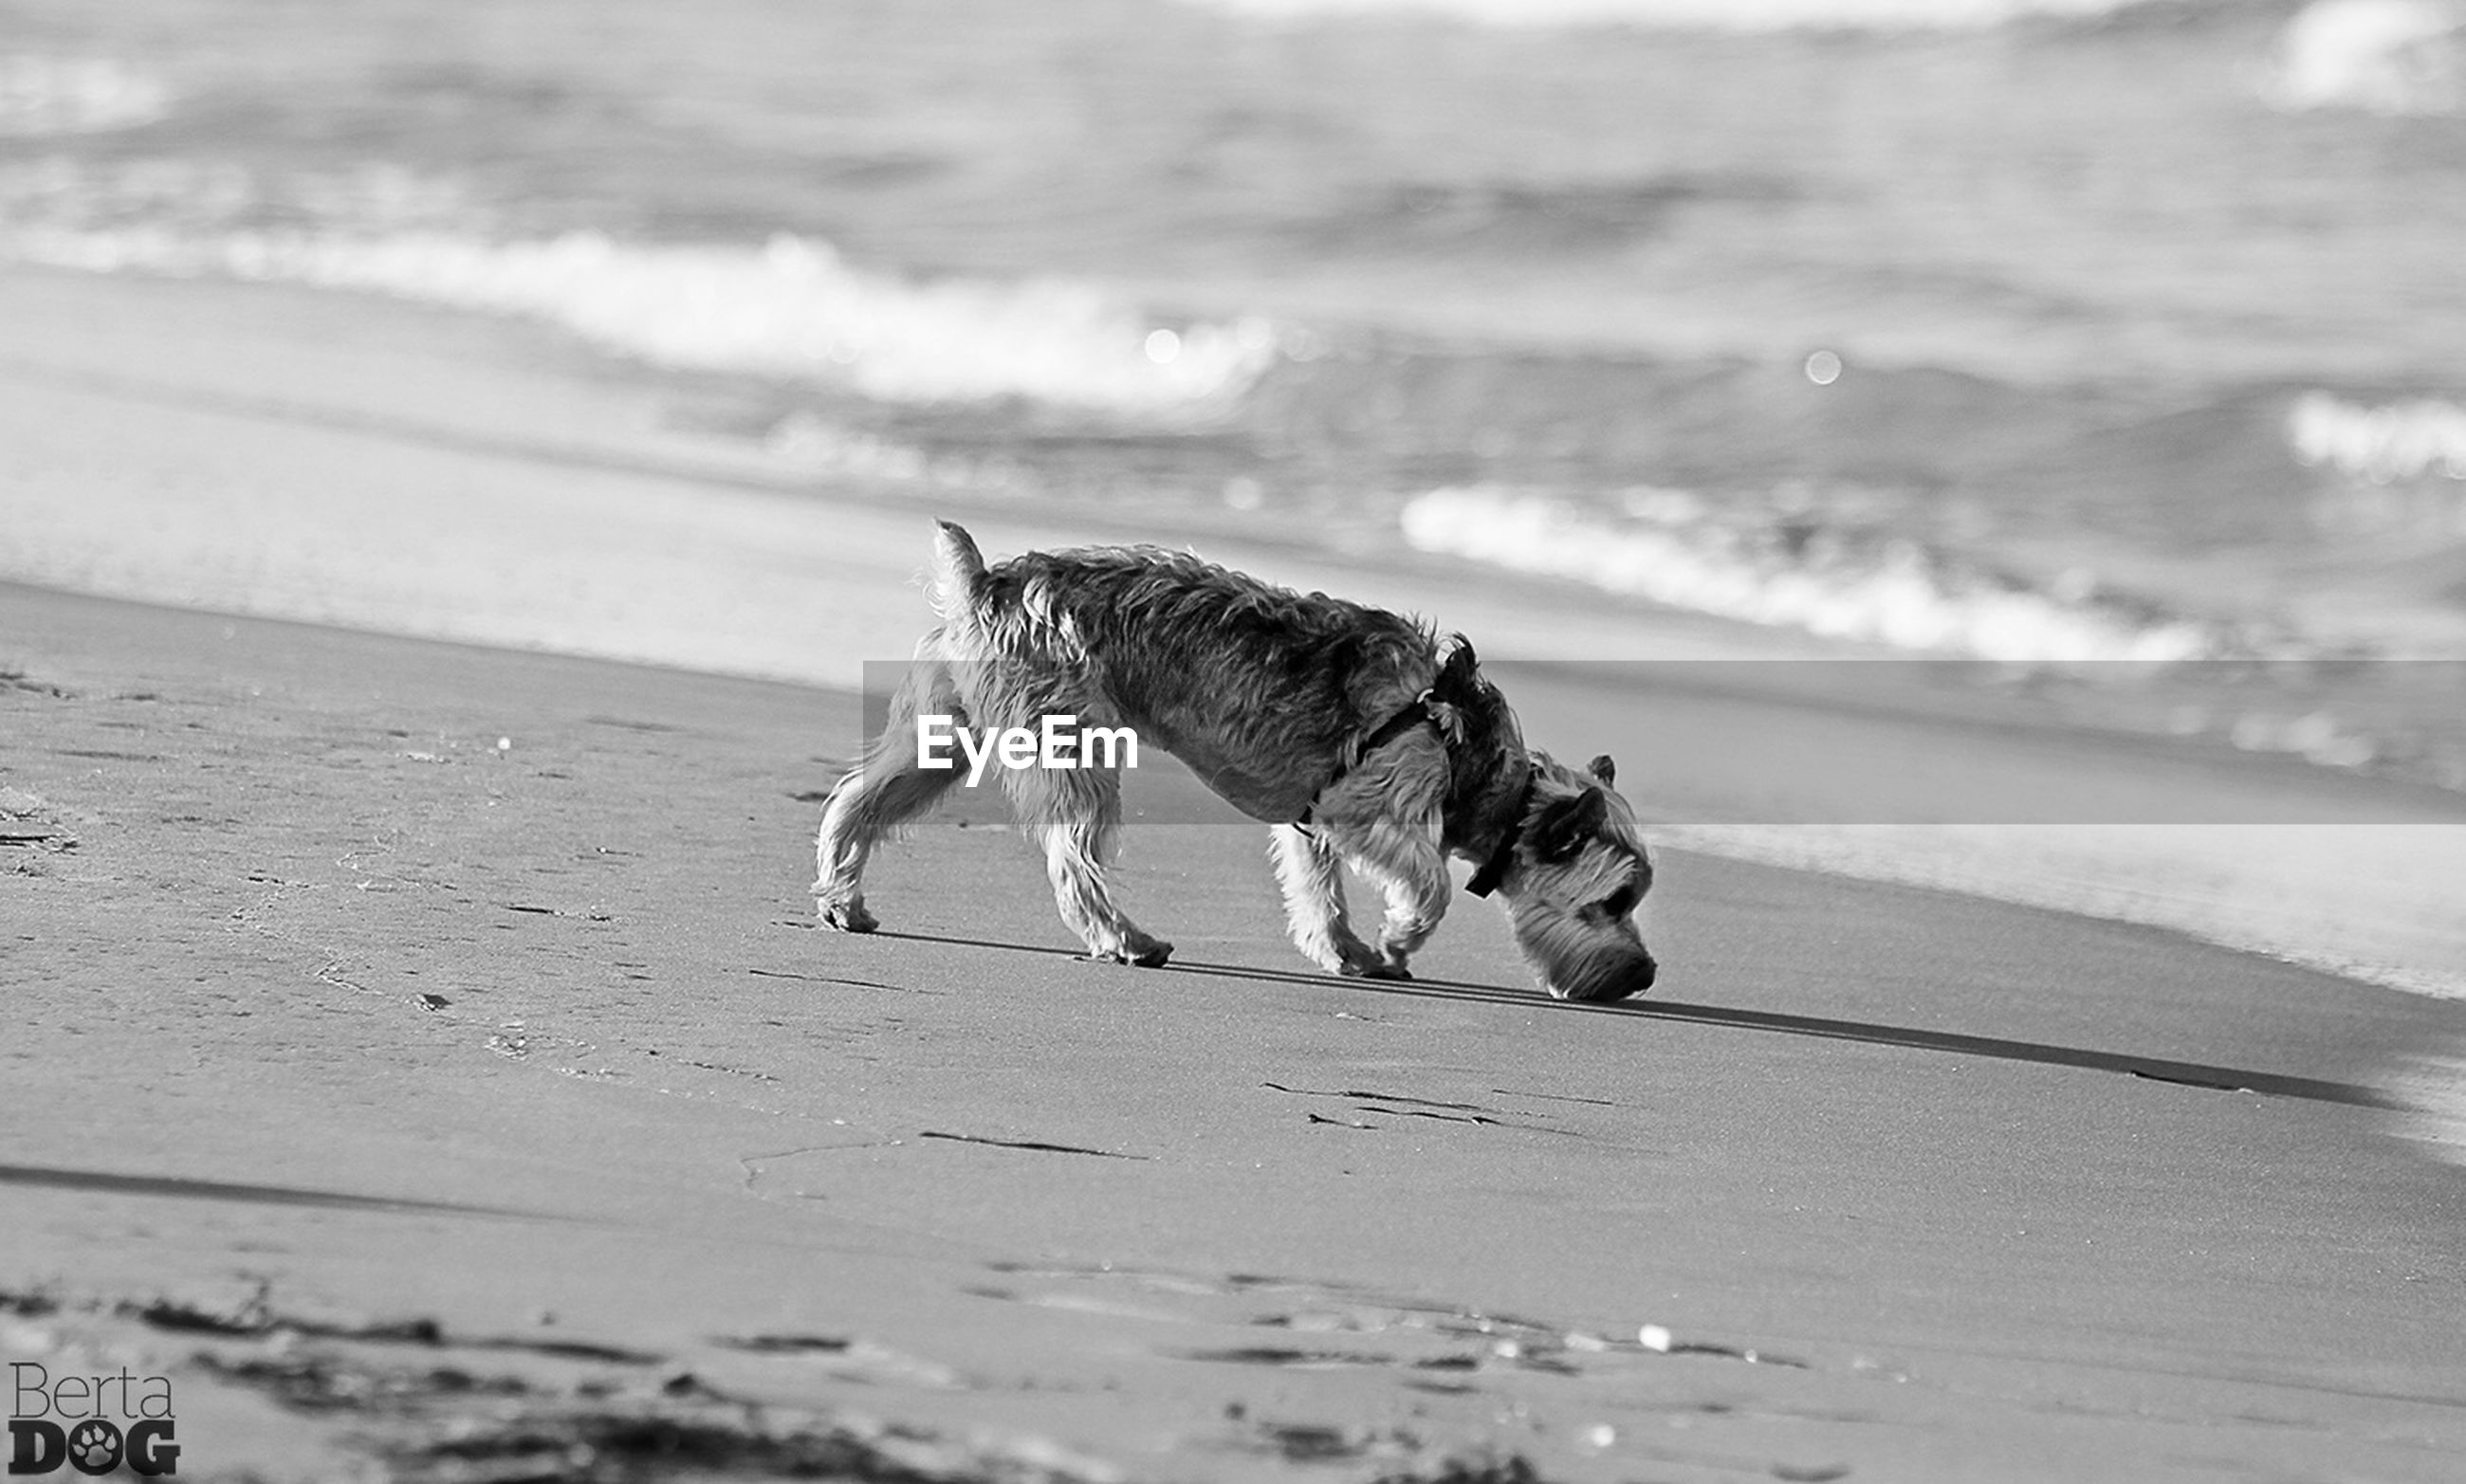 beach, animal themes, one animal, sea, sand, shore, water, dog, full length, wave, mammal, horizon over water, nature, pets, selective focus, animals in the wild, focus on foreground, domestic animals, walking, outdoors